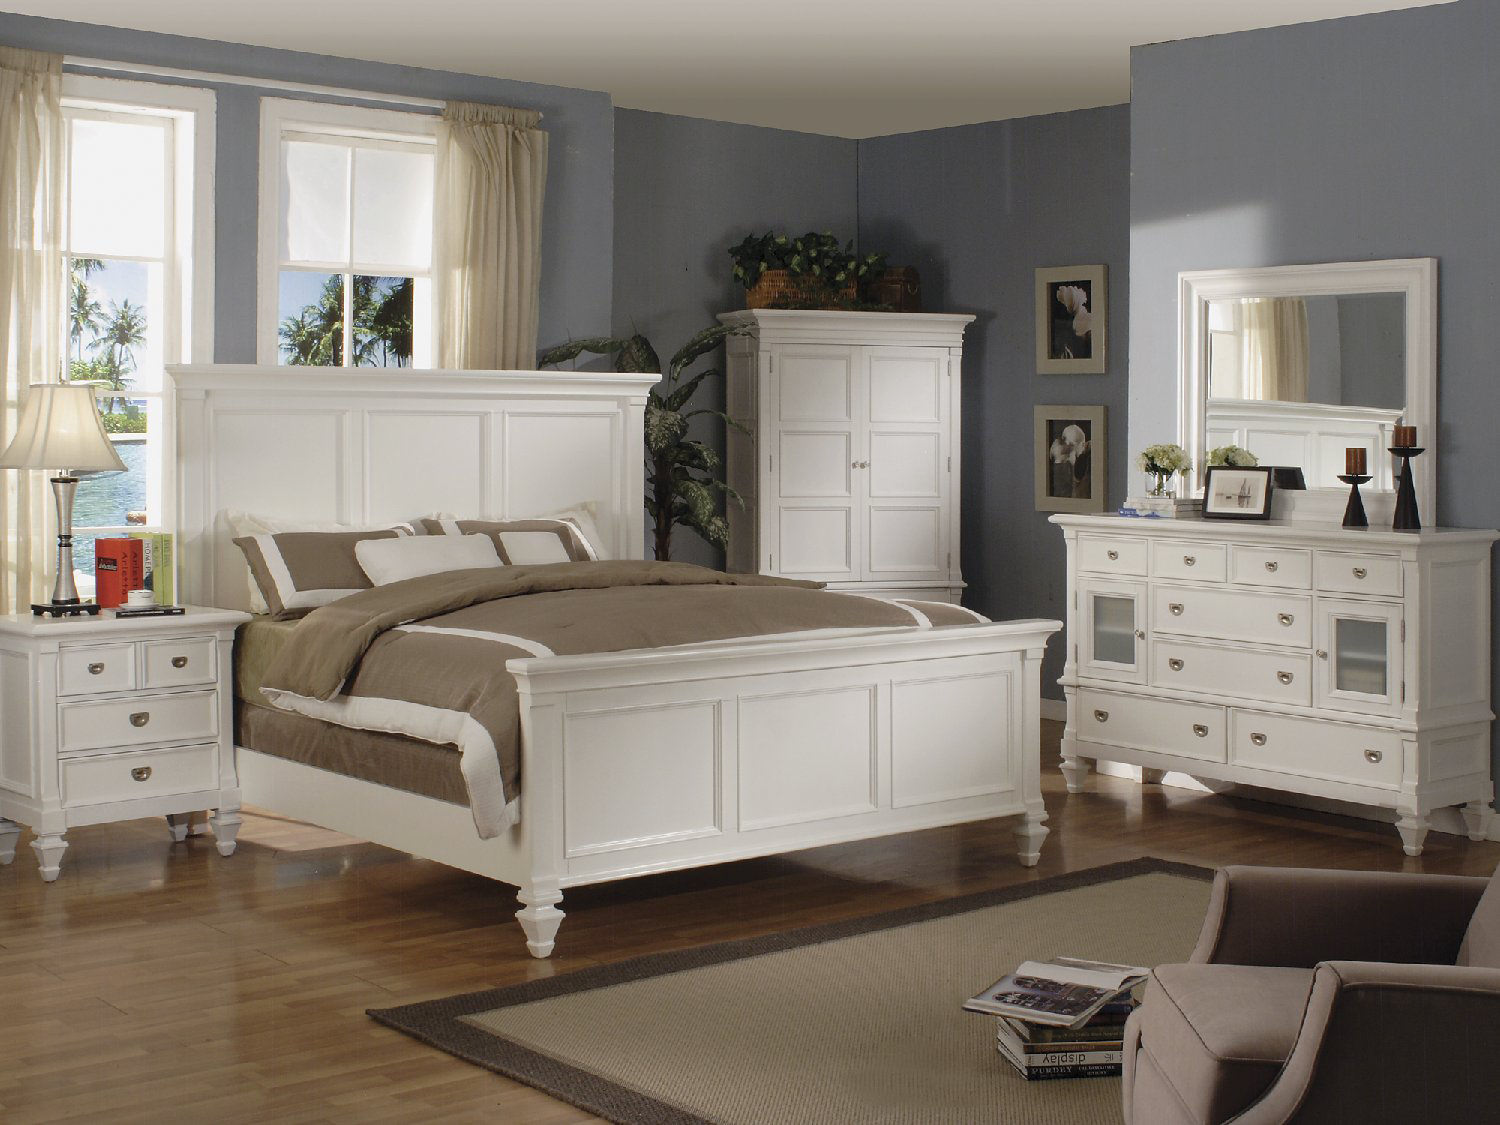 Summer Breeze Panel Bedroom Suite By Thomas Hom Furniture